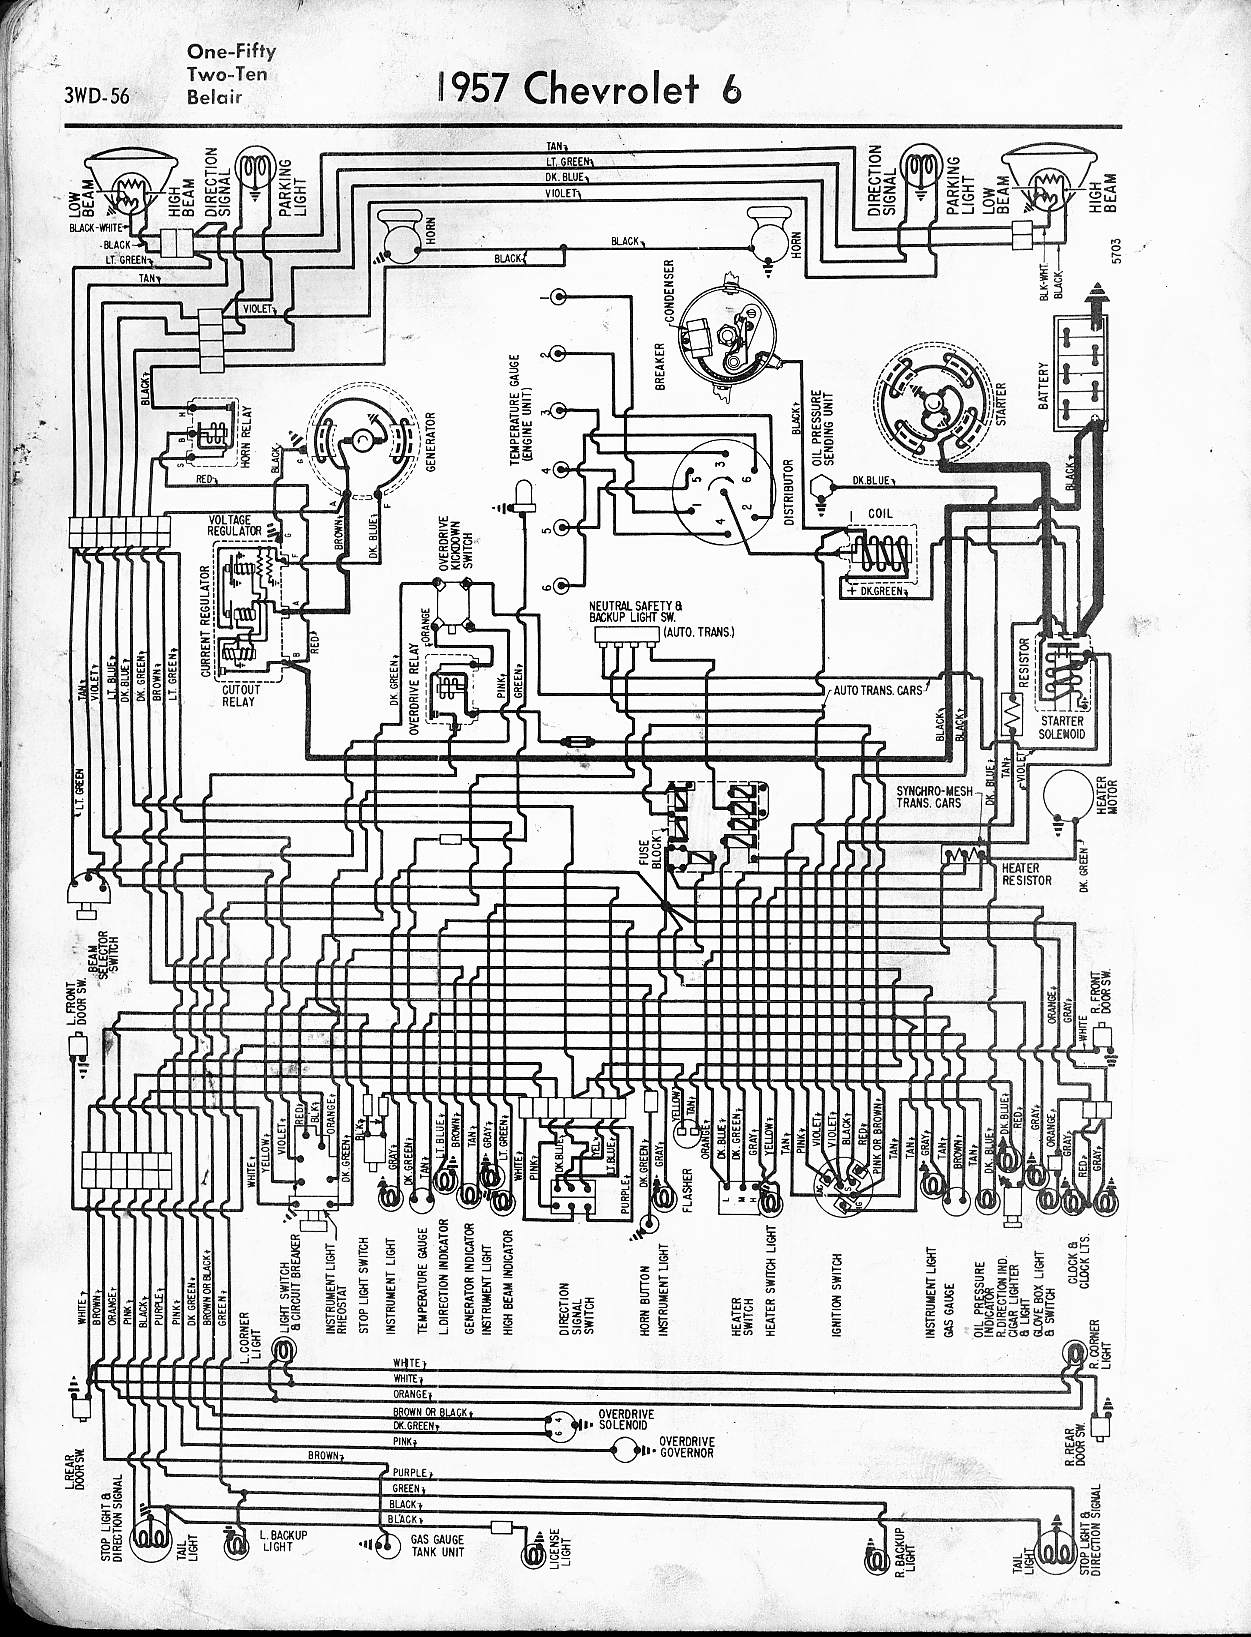 55 bel air wiring diagram 57 - 65 chevy wiring diagrams 65 bel air wire diagram #7